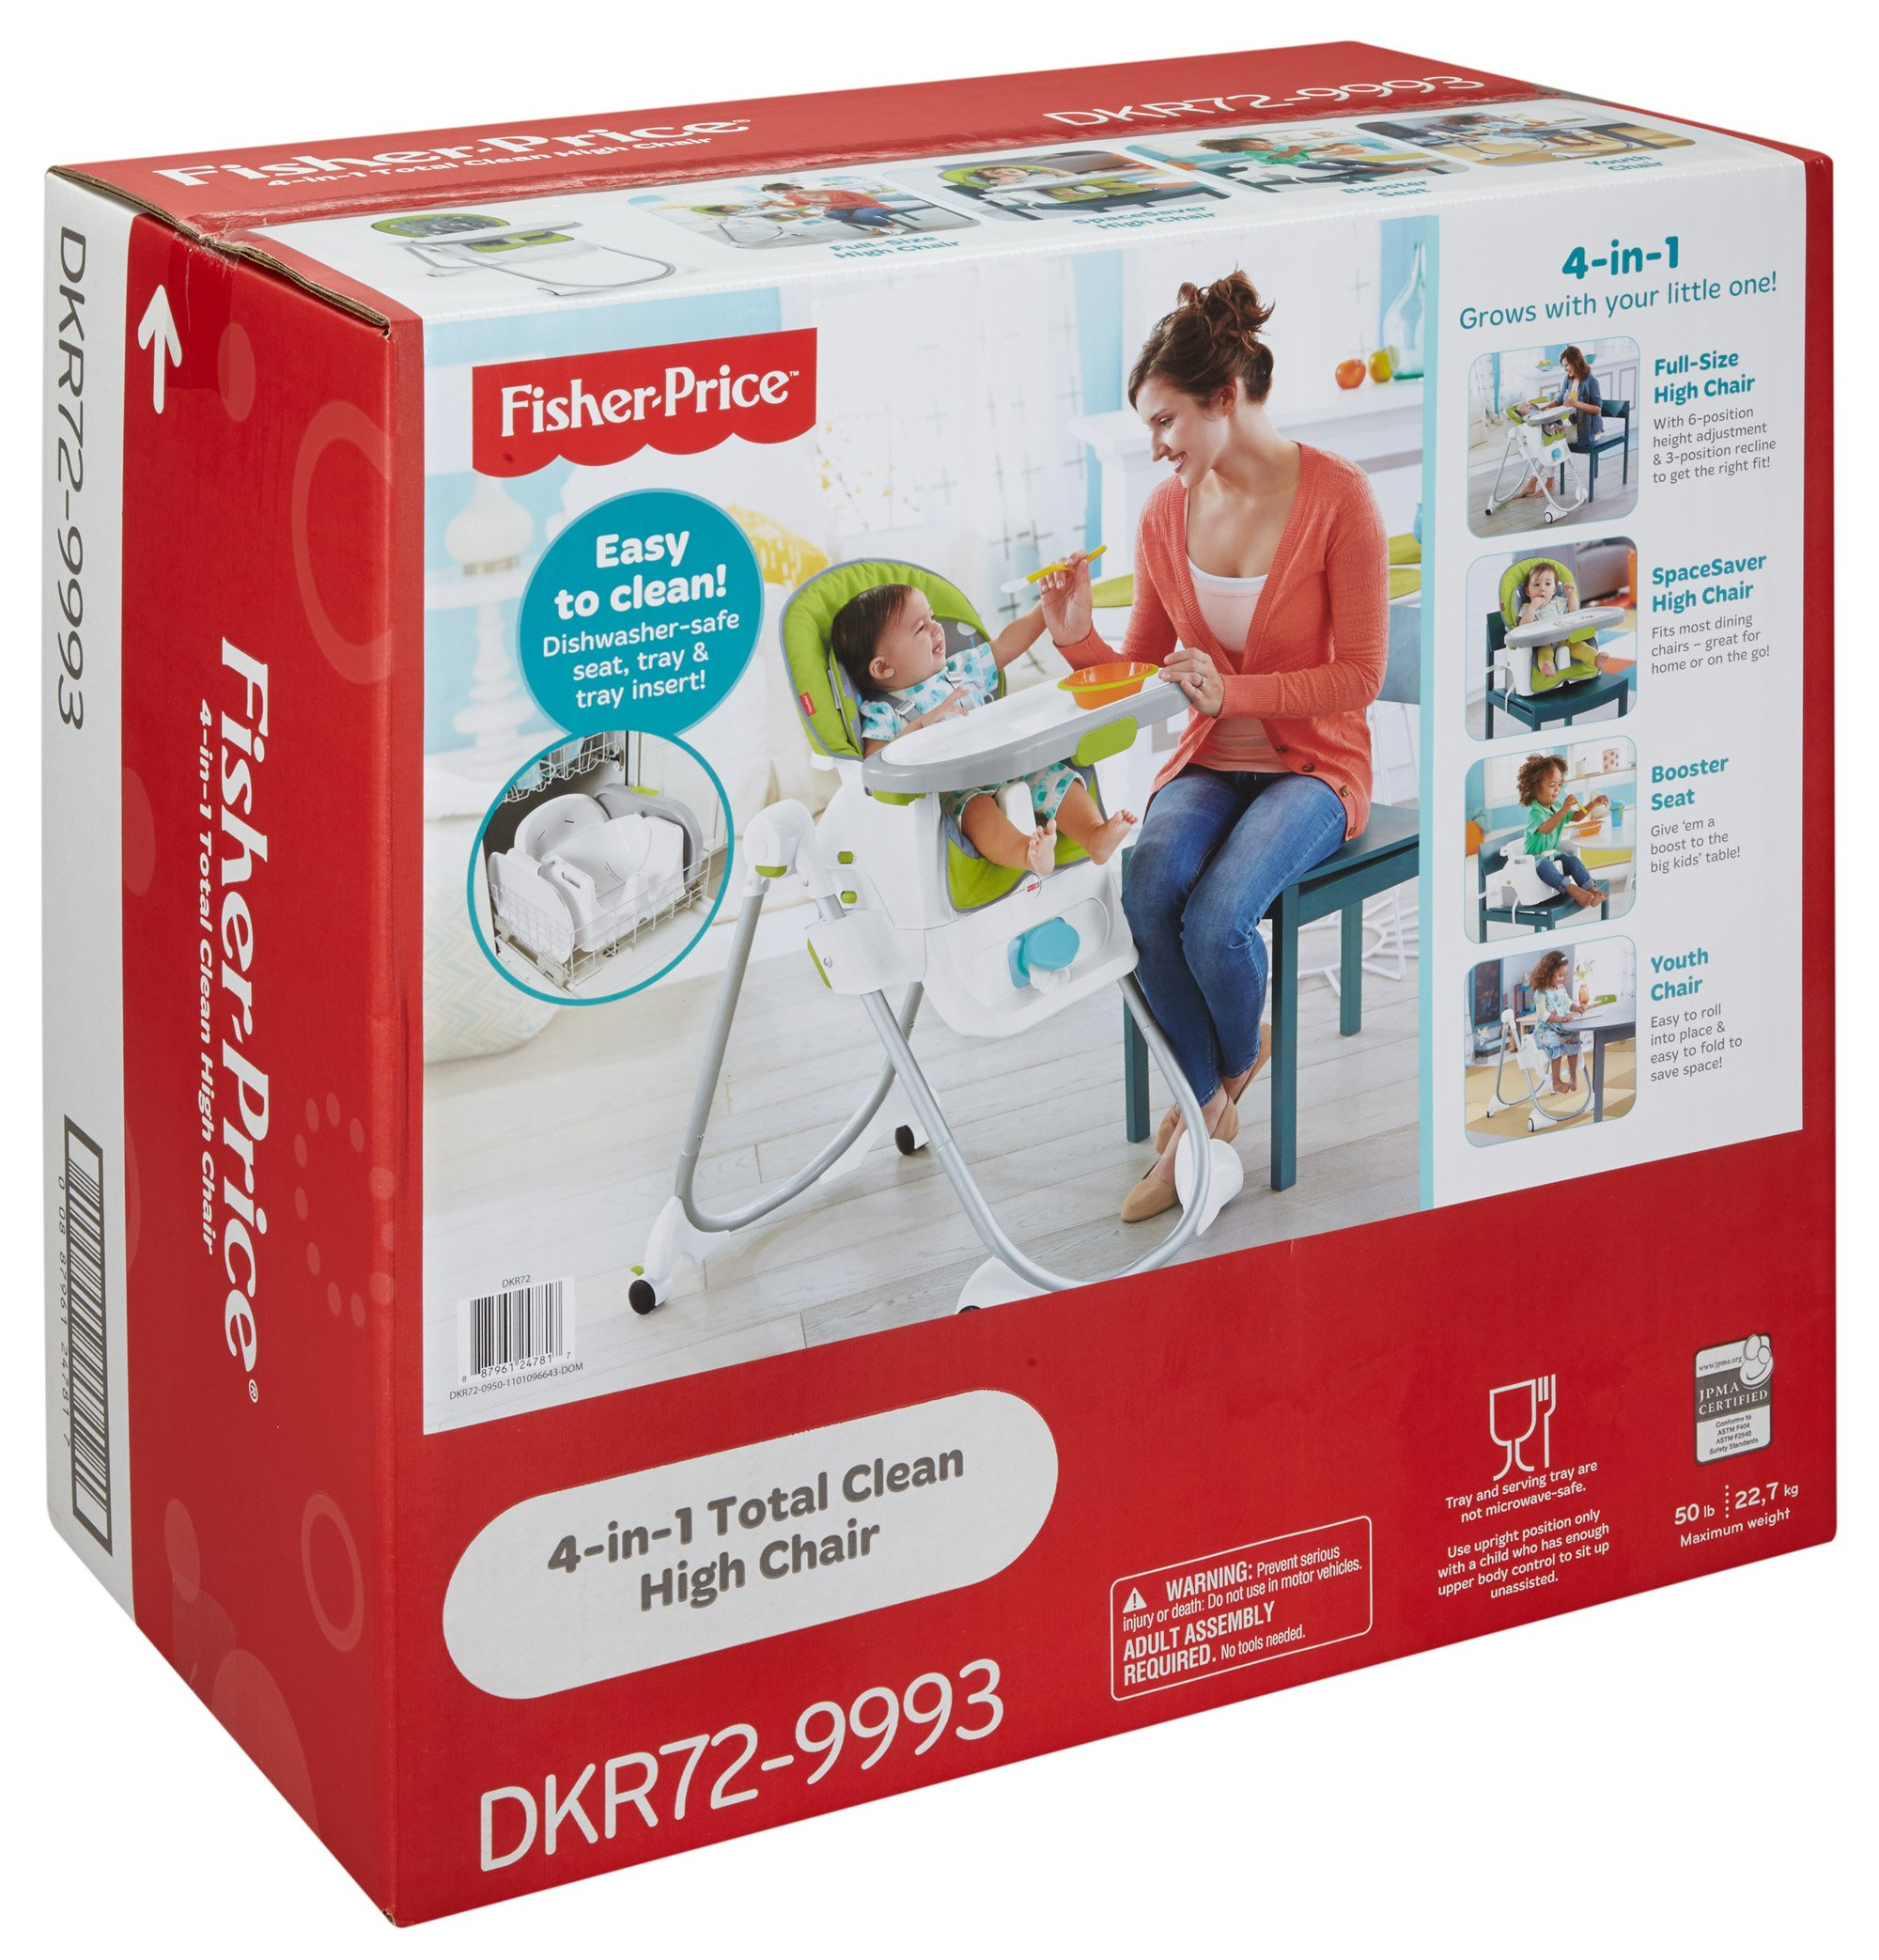 Fisher-Price 4-in-1 Total Clean High Chair, Green/Gray by Fisher-Price (Image #17)